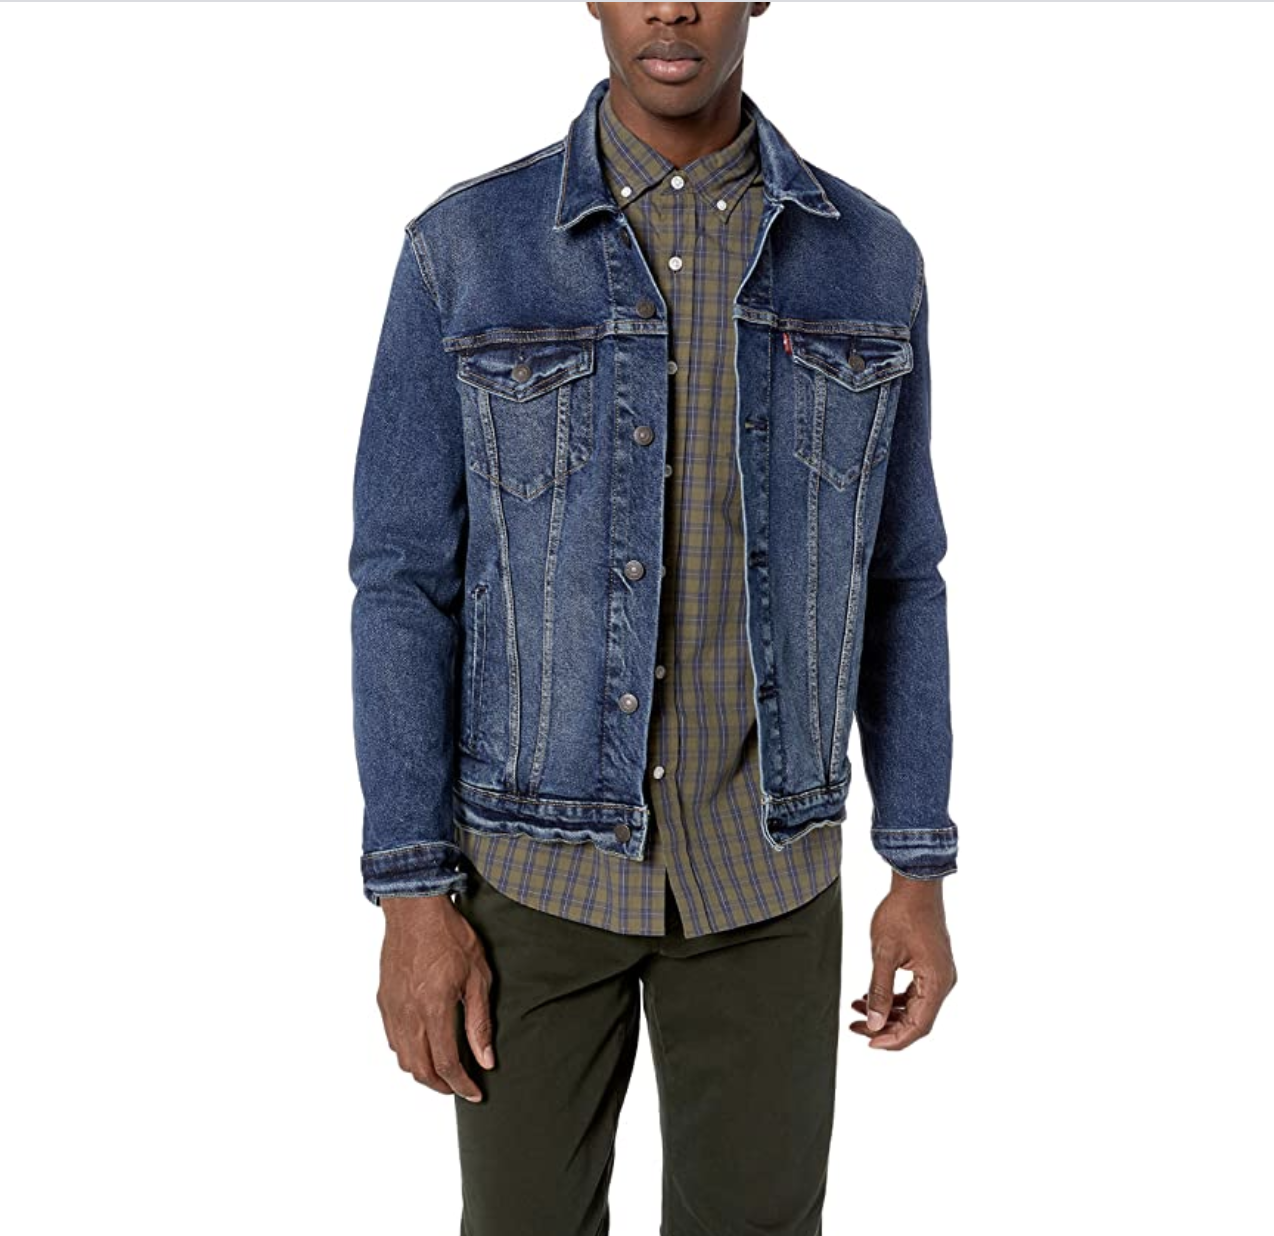 Model wearing denim jacket with pockets with a button flap close on both sides of the chest and buttons down the front in a classic blue color